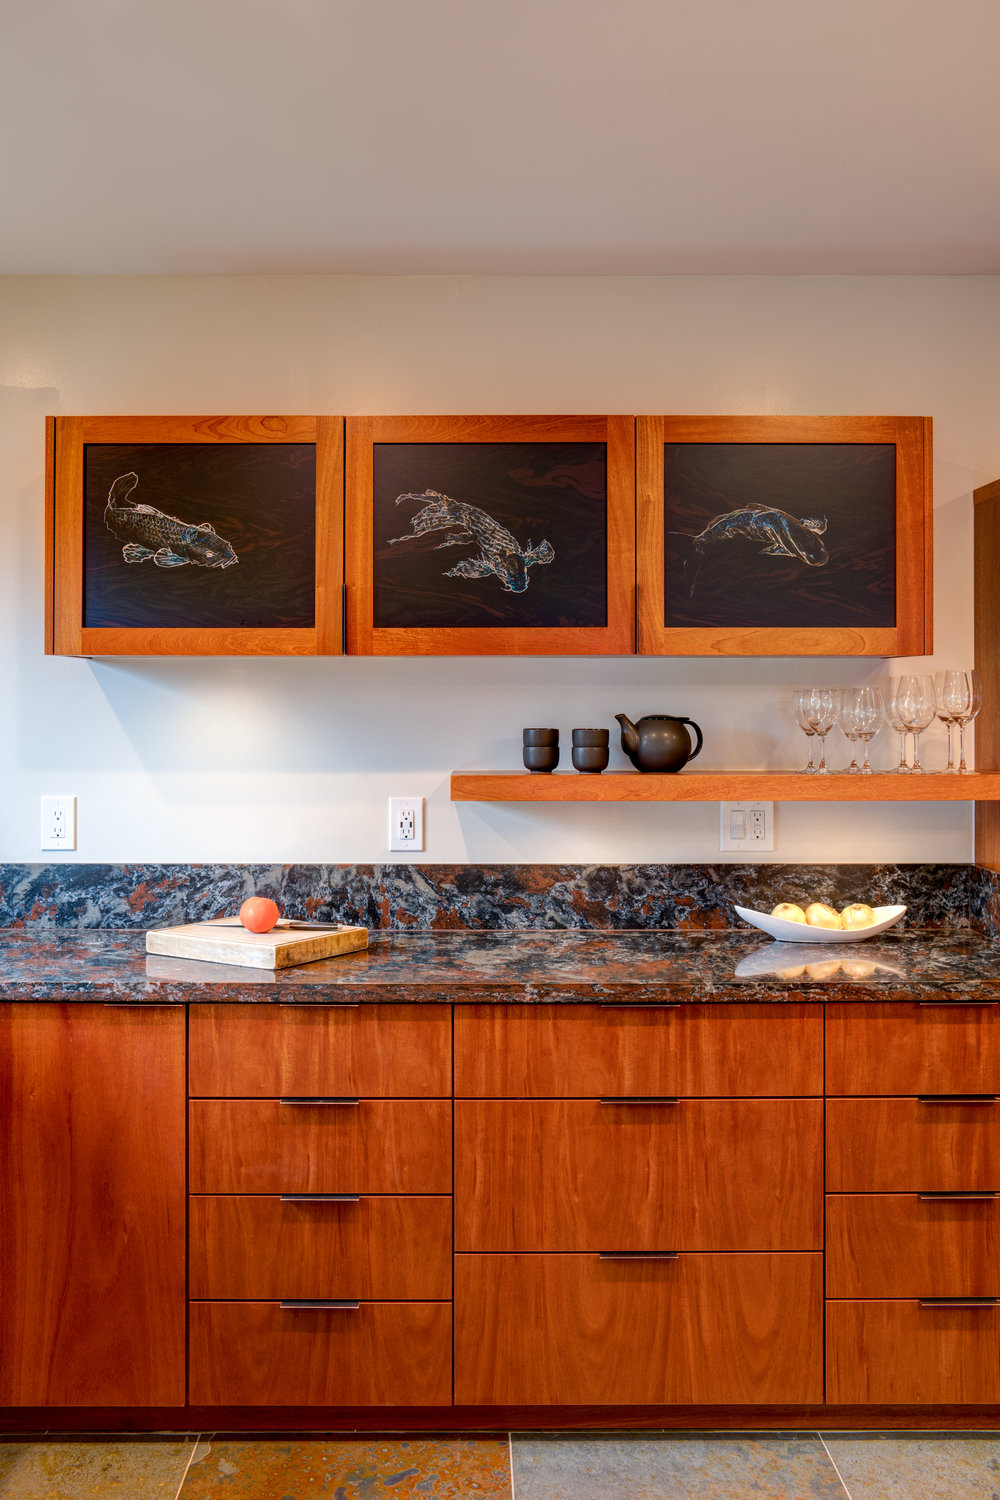 fishkitchendownsize.jpg